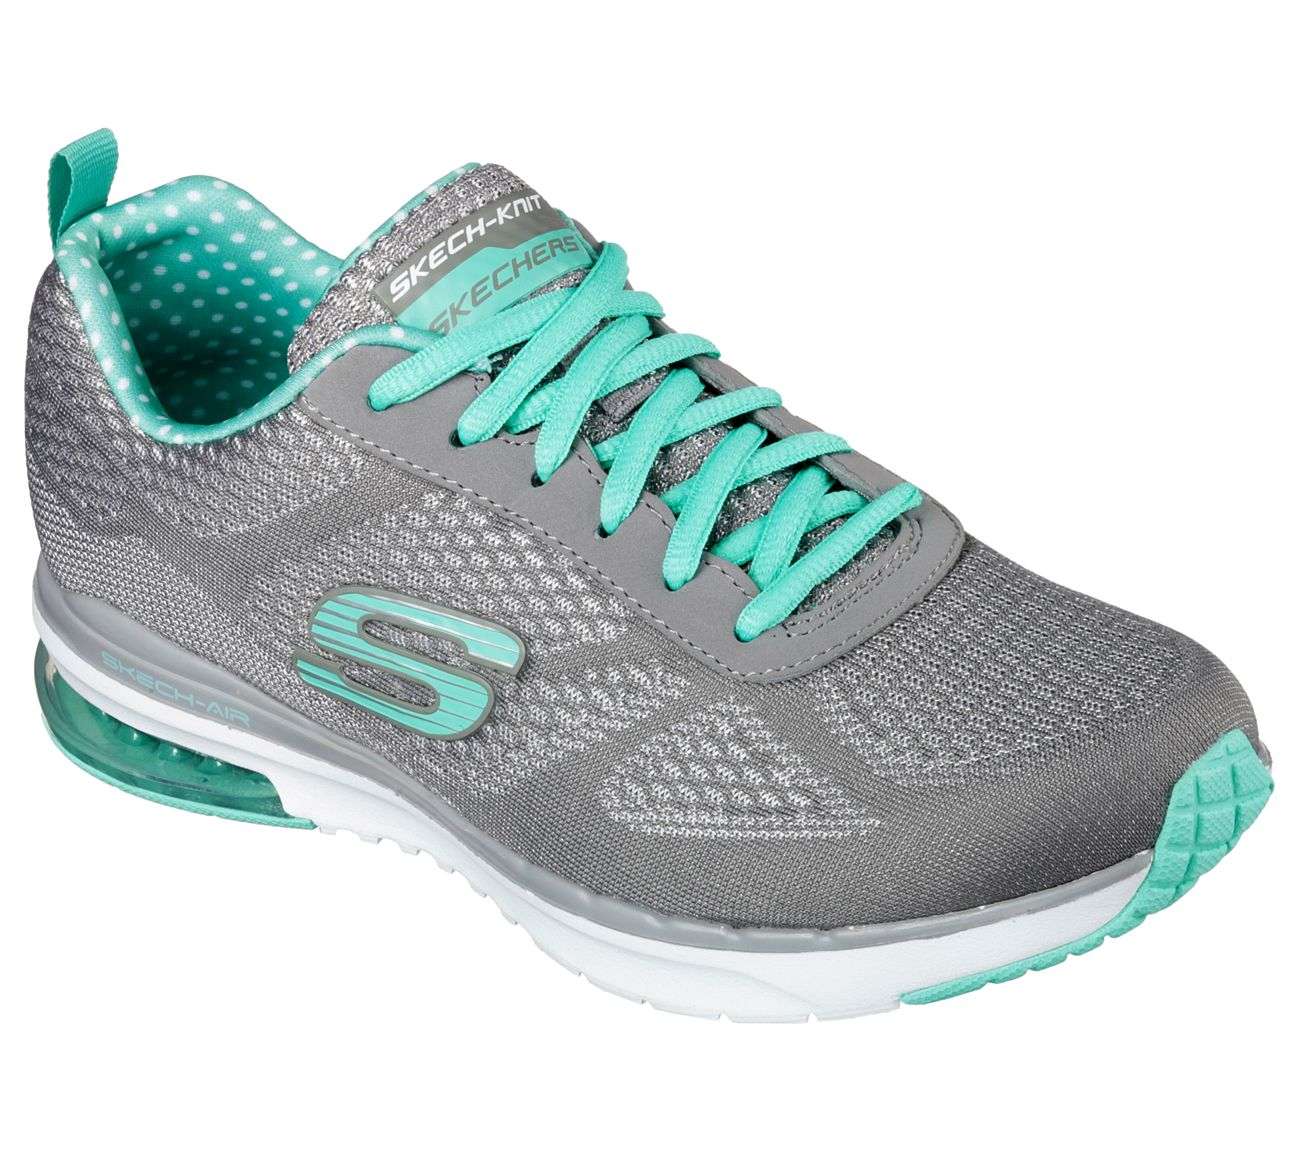 Improve your workout easily with the SKECHERS Skech-Air Infinity shoe.  Skech Knit Mesh one piece fabric upper in a lace up athletic sporty training sneaker with visible air cushion heel and Gel Infused Memory Foam insole.